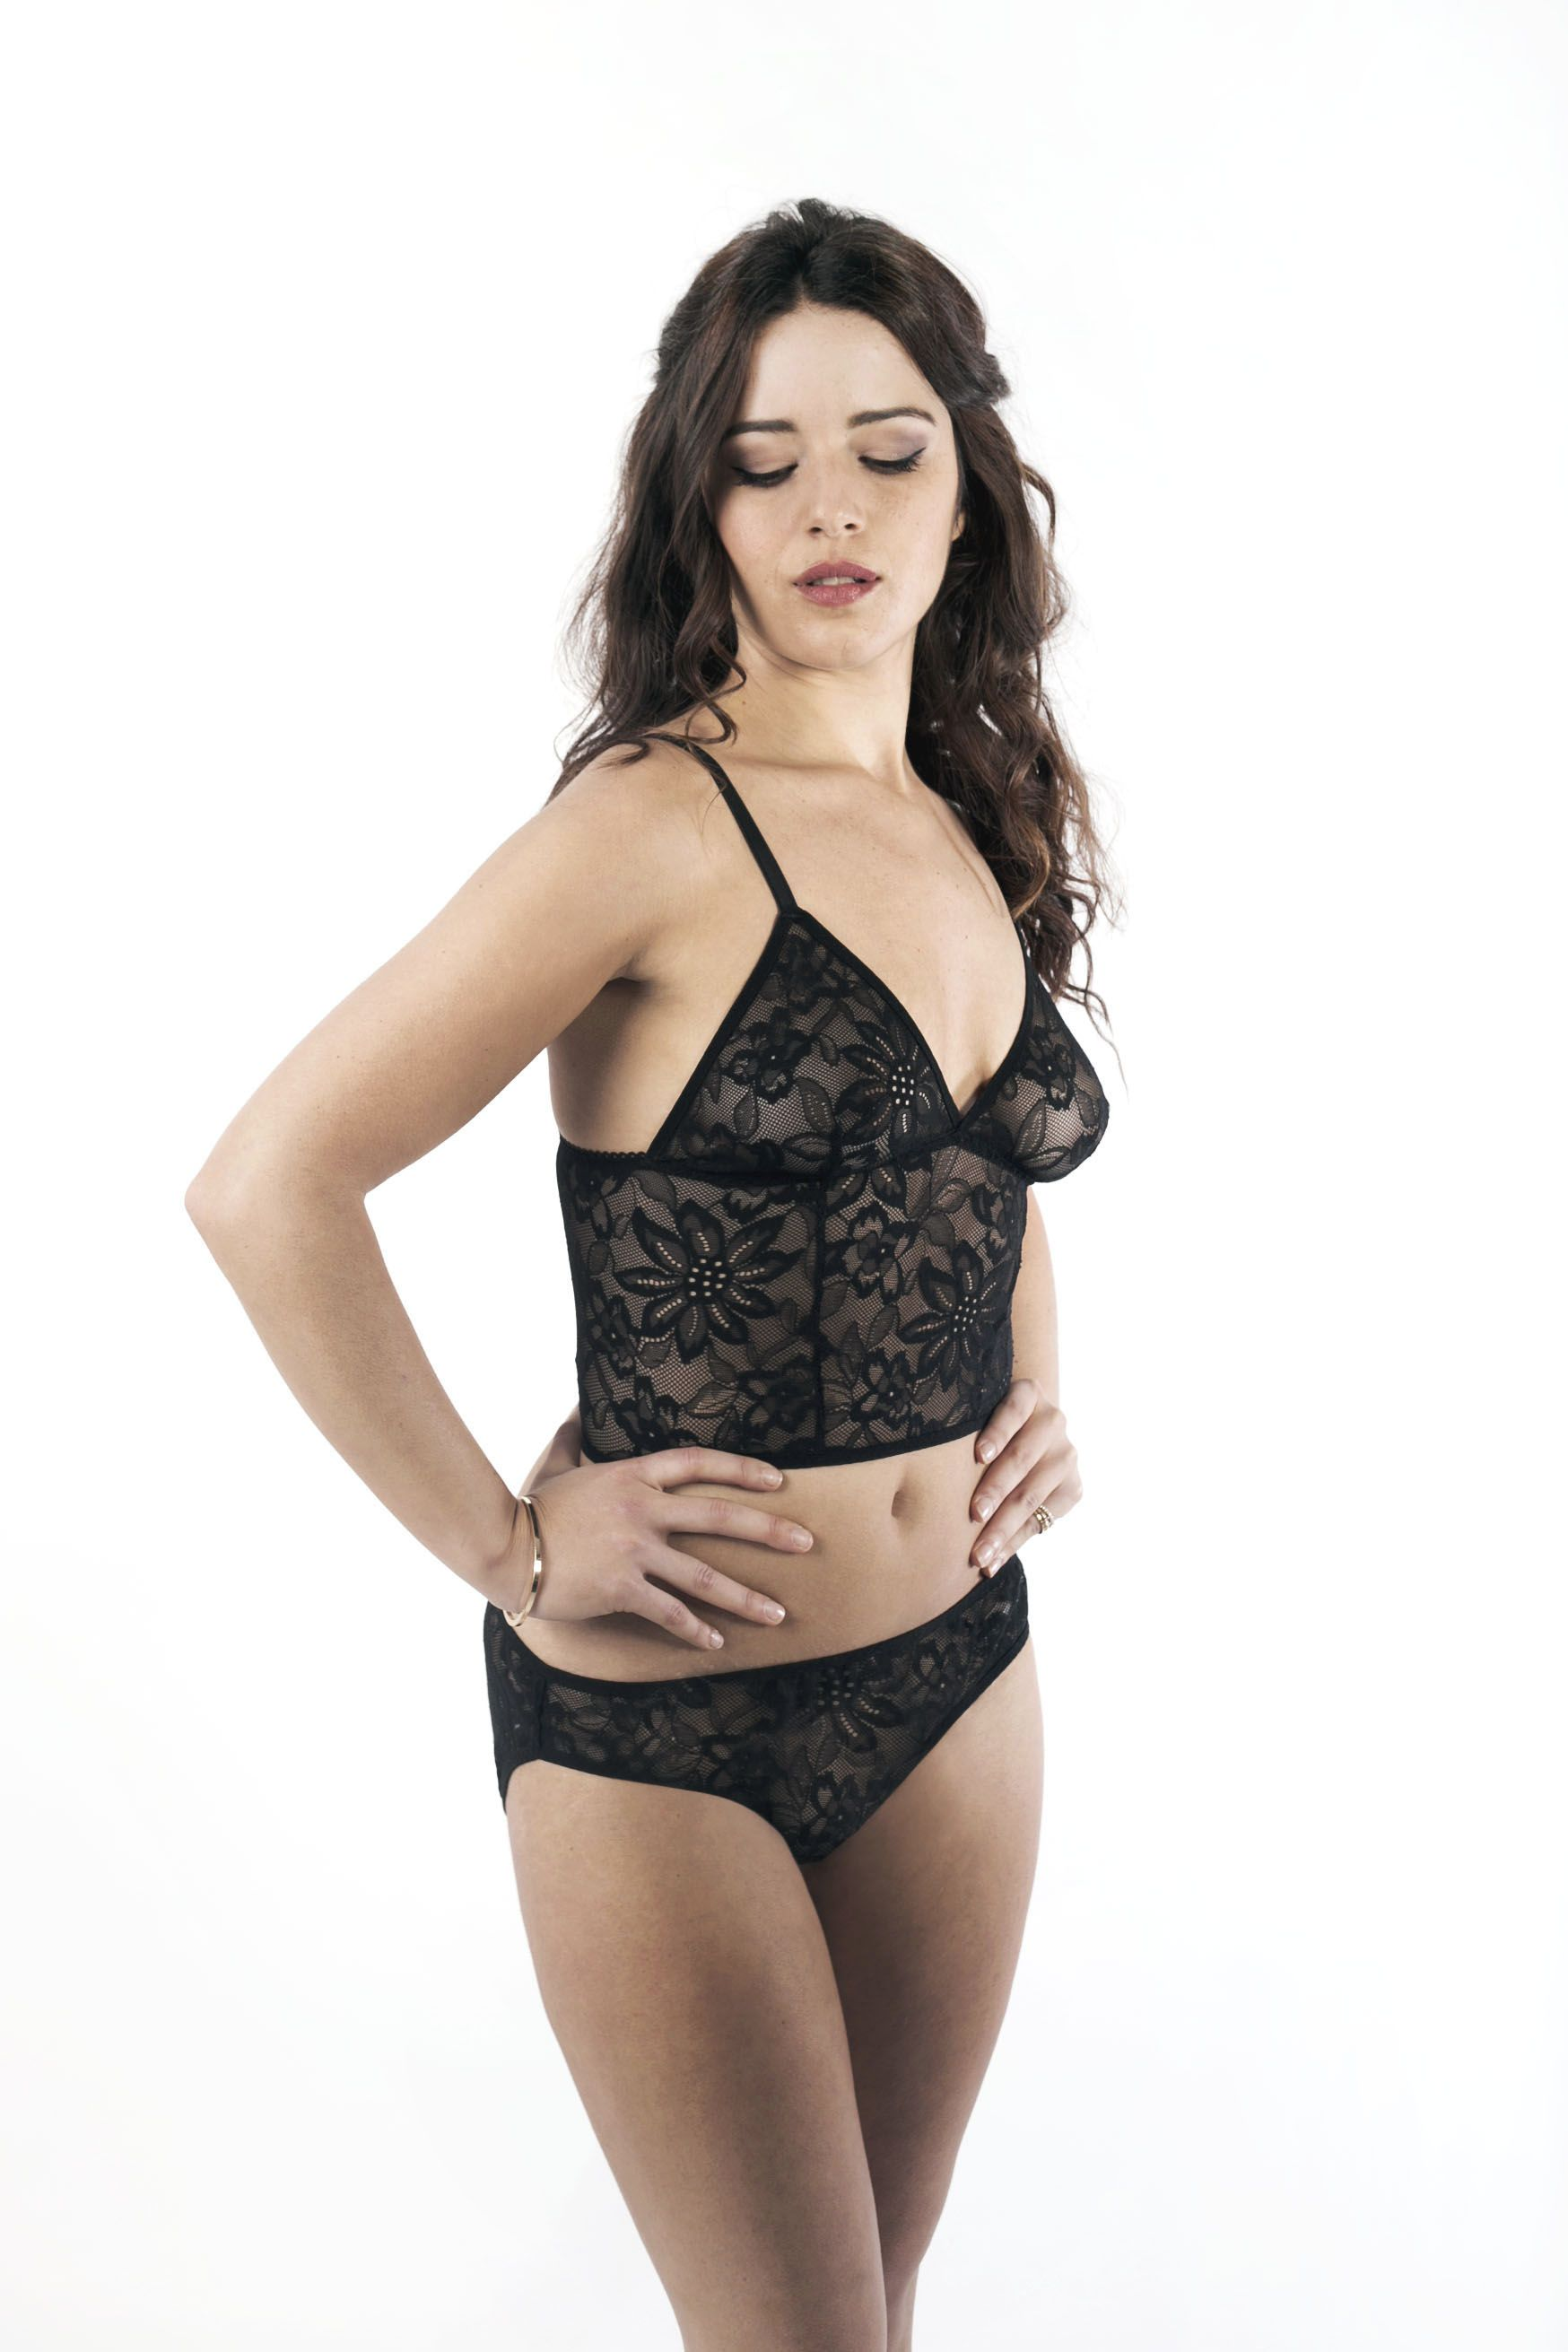 9692e6aedf8c8 Black lace long line bralette and knickers   panties lingerie set by  handmade indie lingerie brand Nahina on Etsy